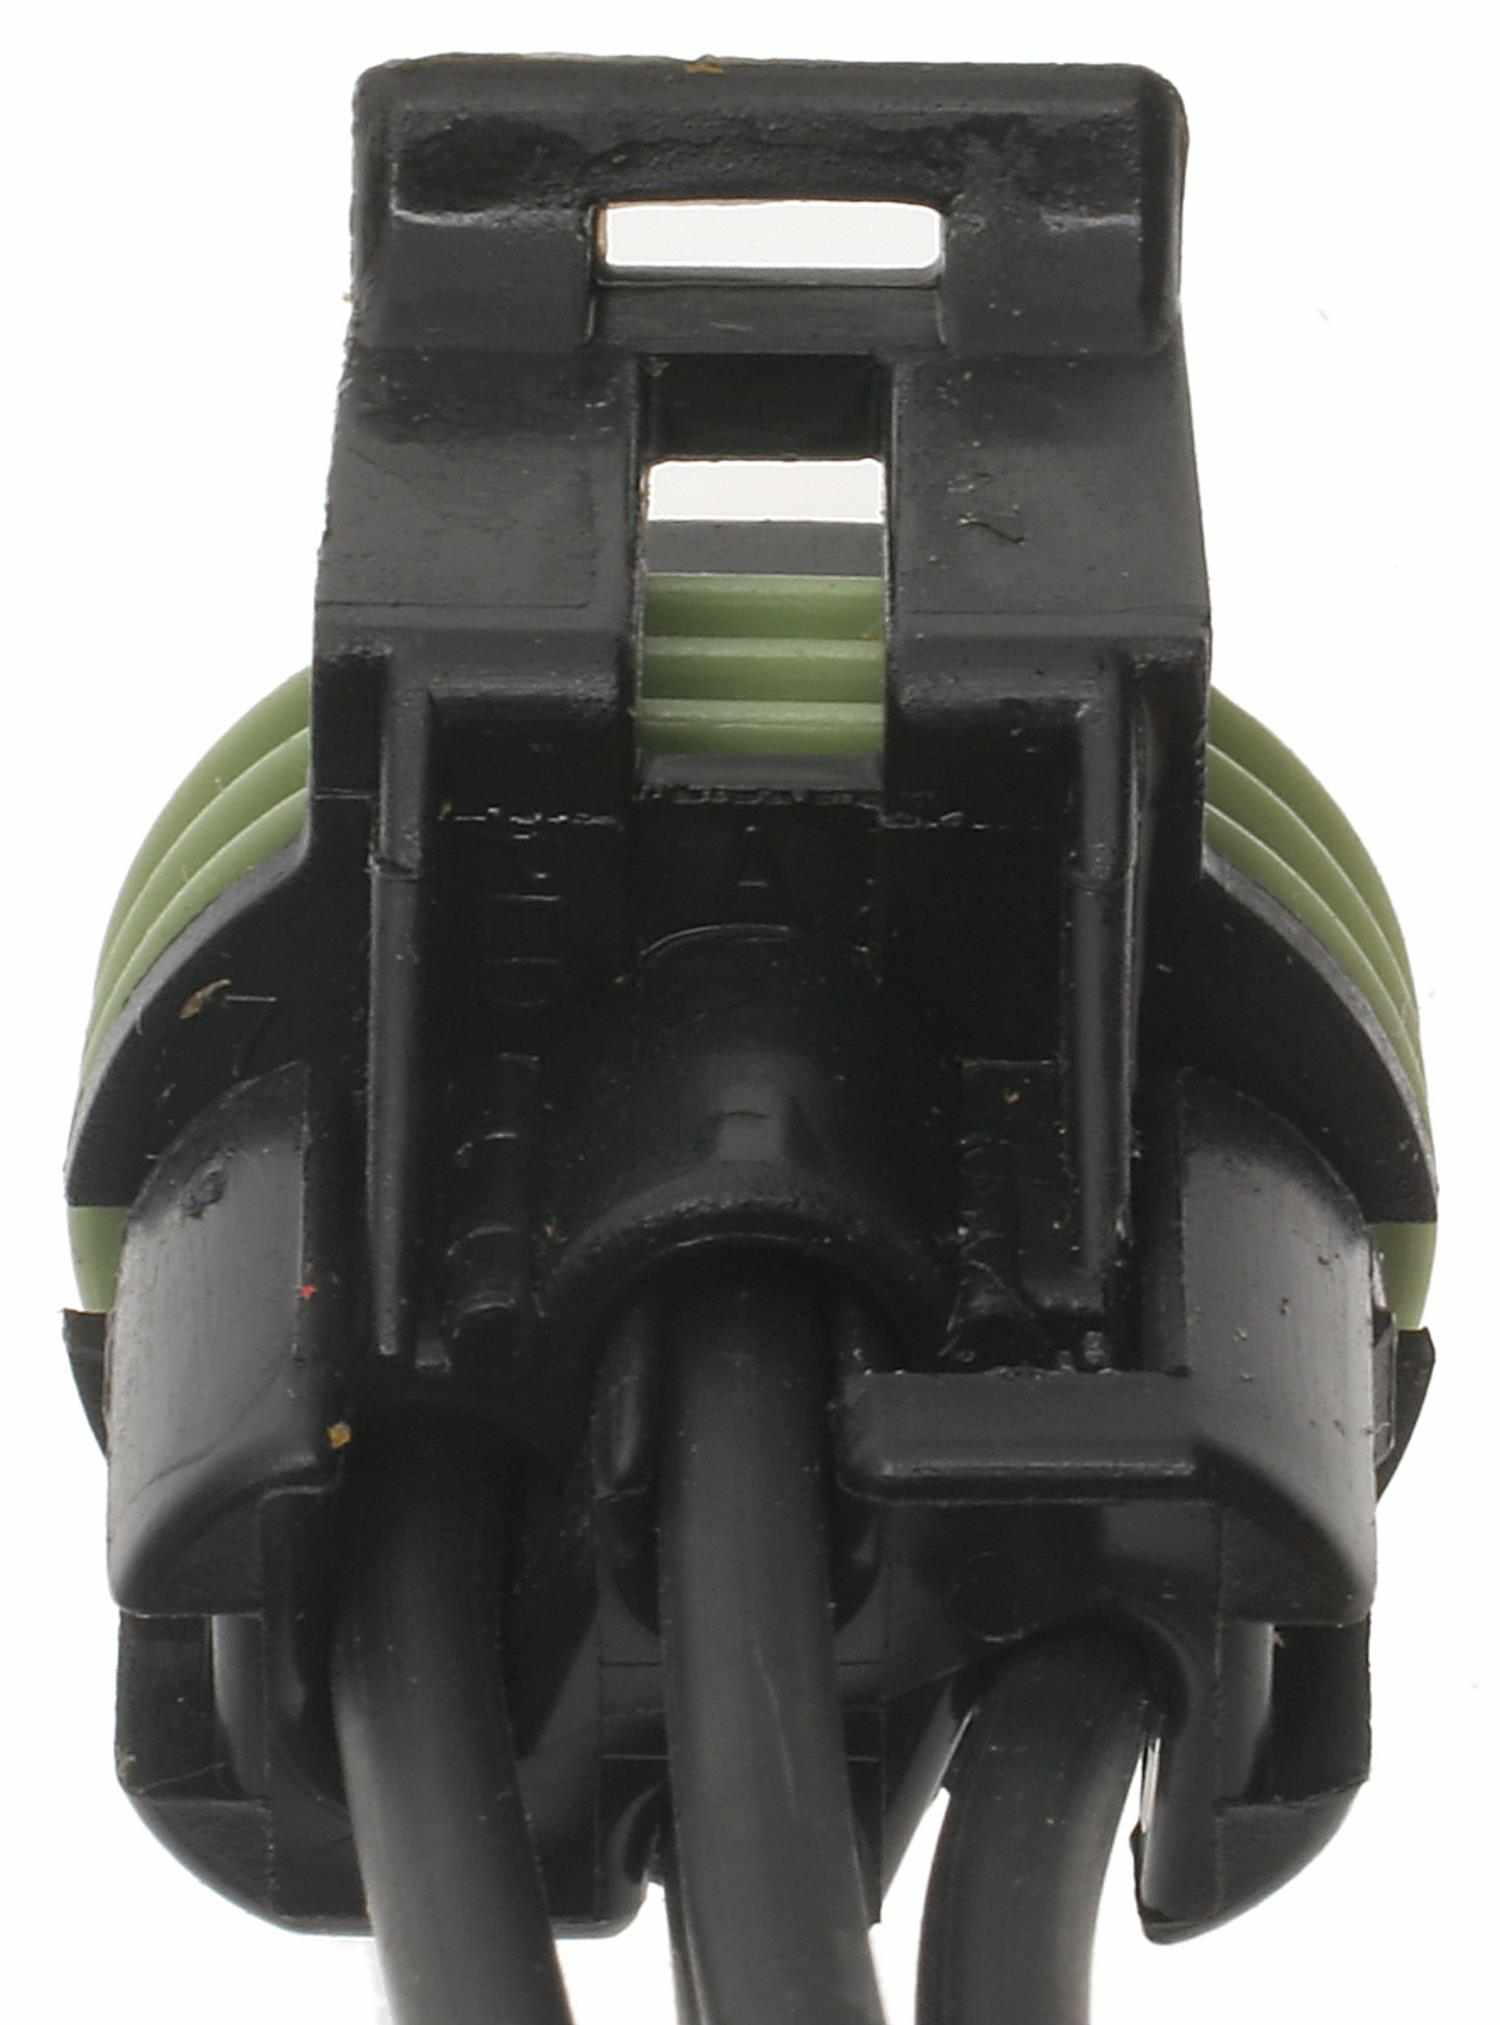 ACDELCO PROFESSIONAL - Engine Coolant Temperature Sending Unit Switch Connector - DCC PT2325